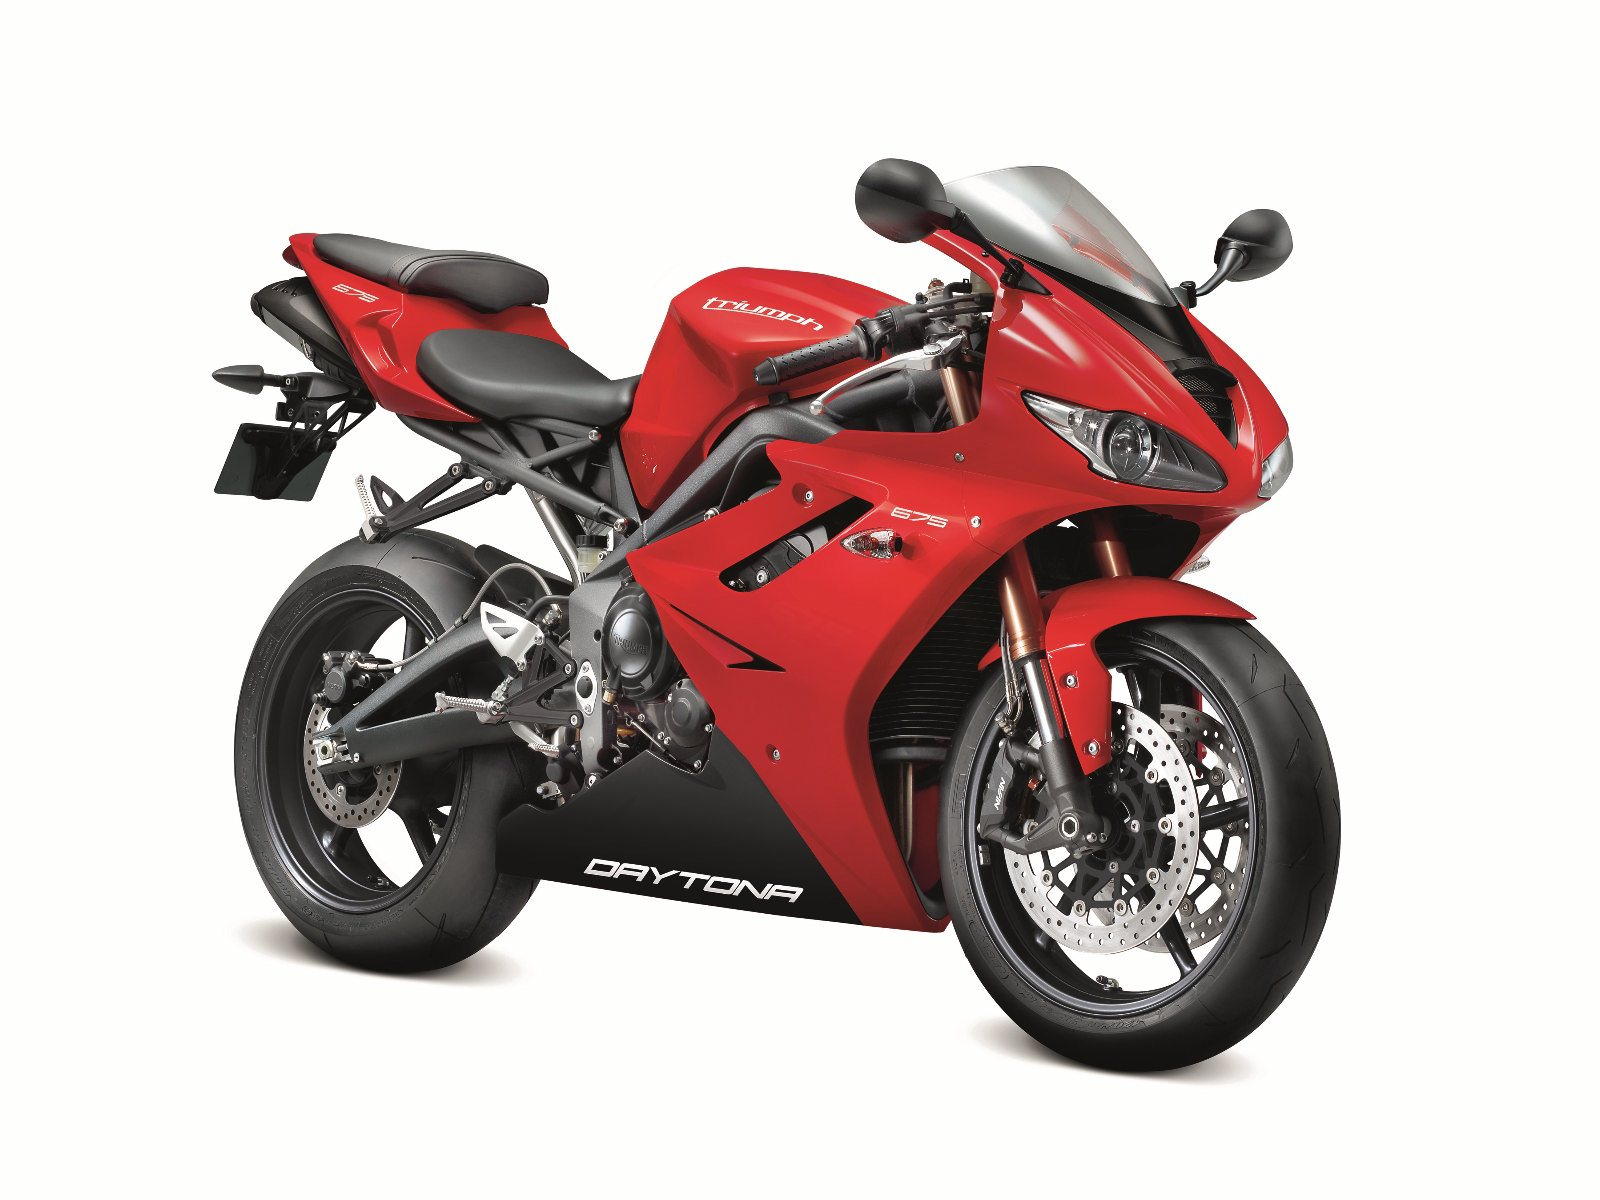 2012 Triumph Daytona 675 | Top Speed. »